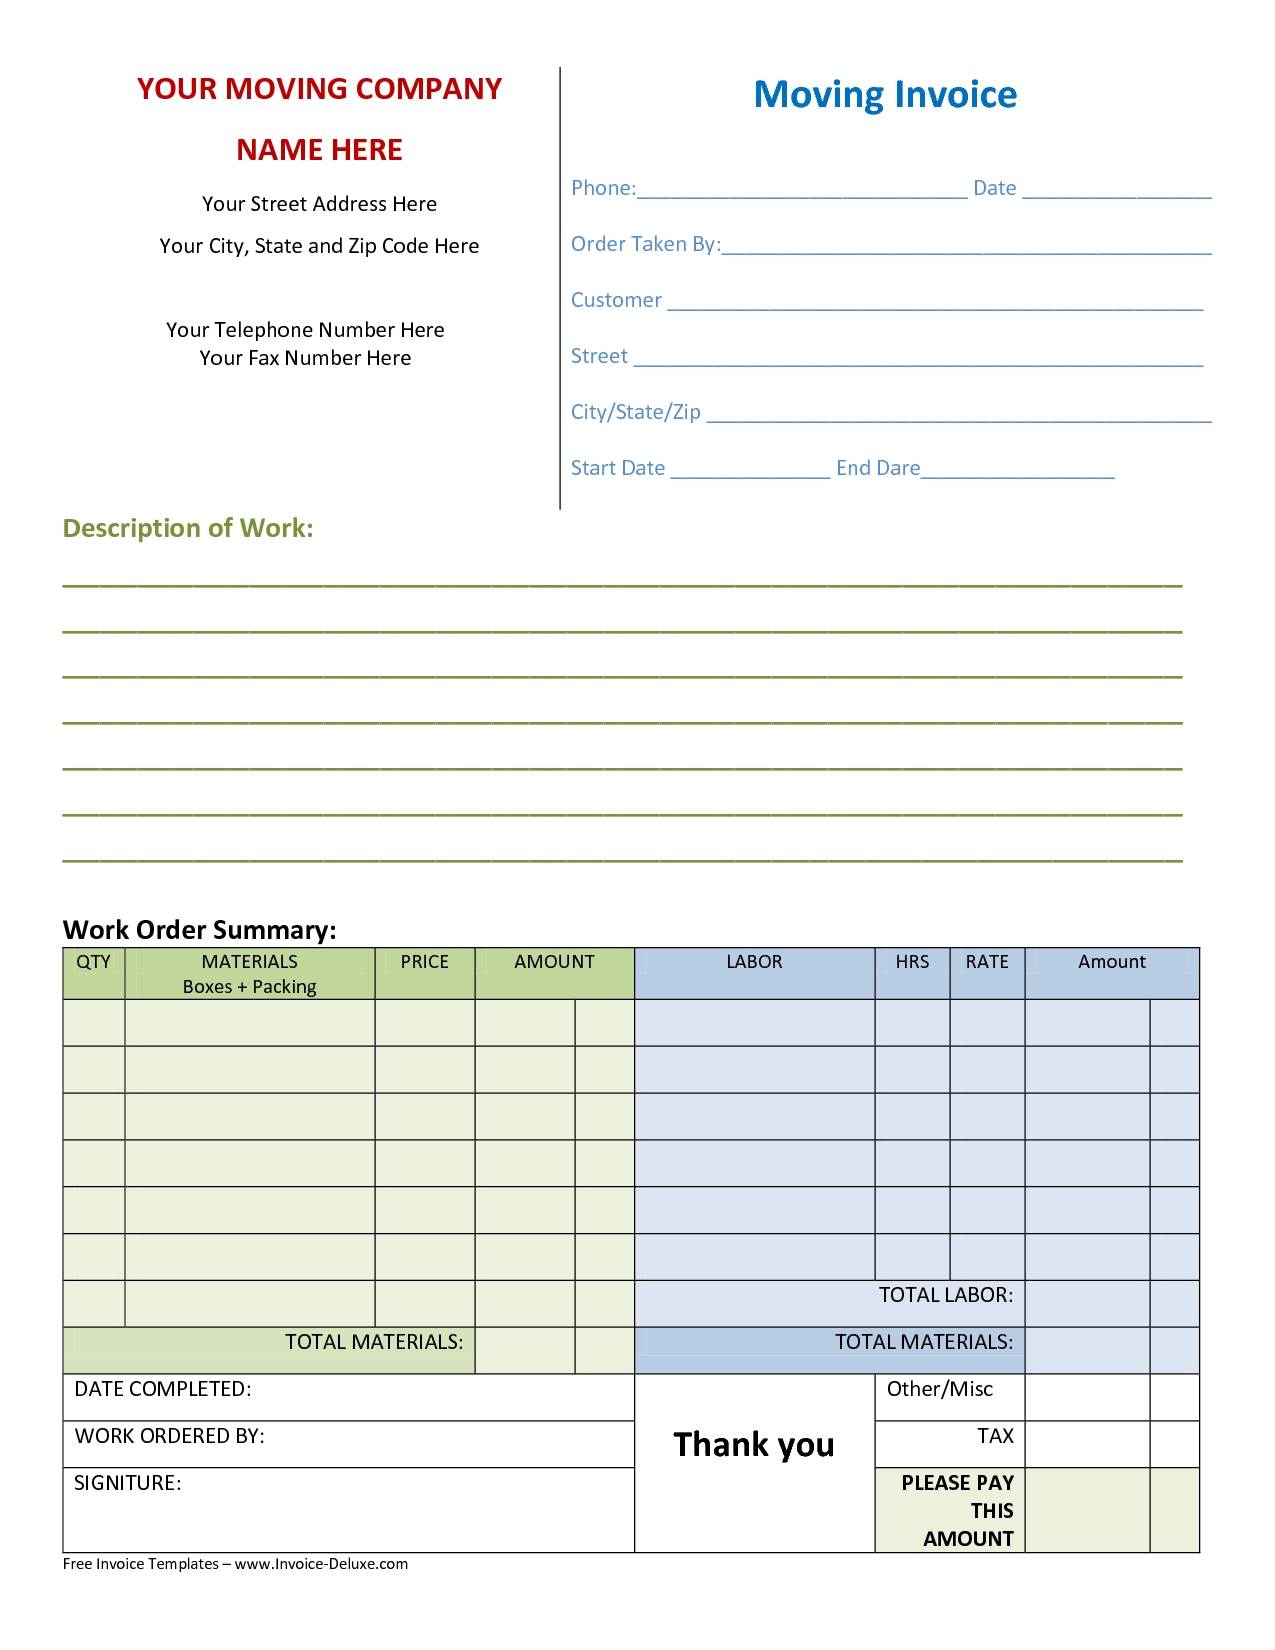 moving invoice template to download and print for free